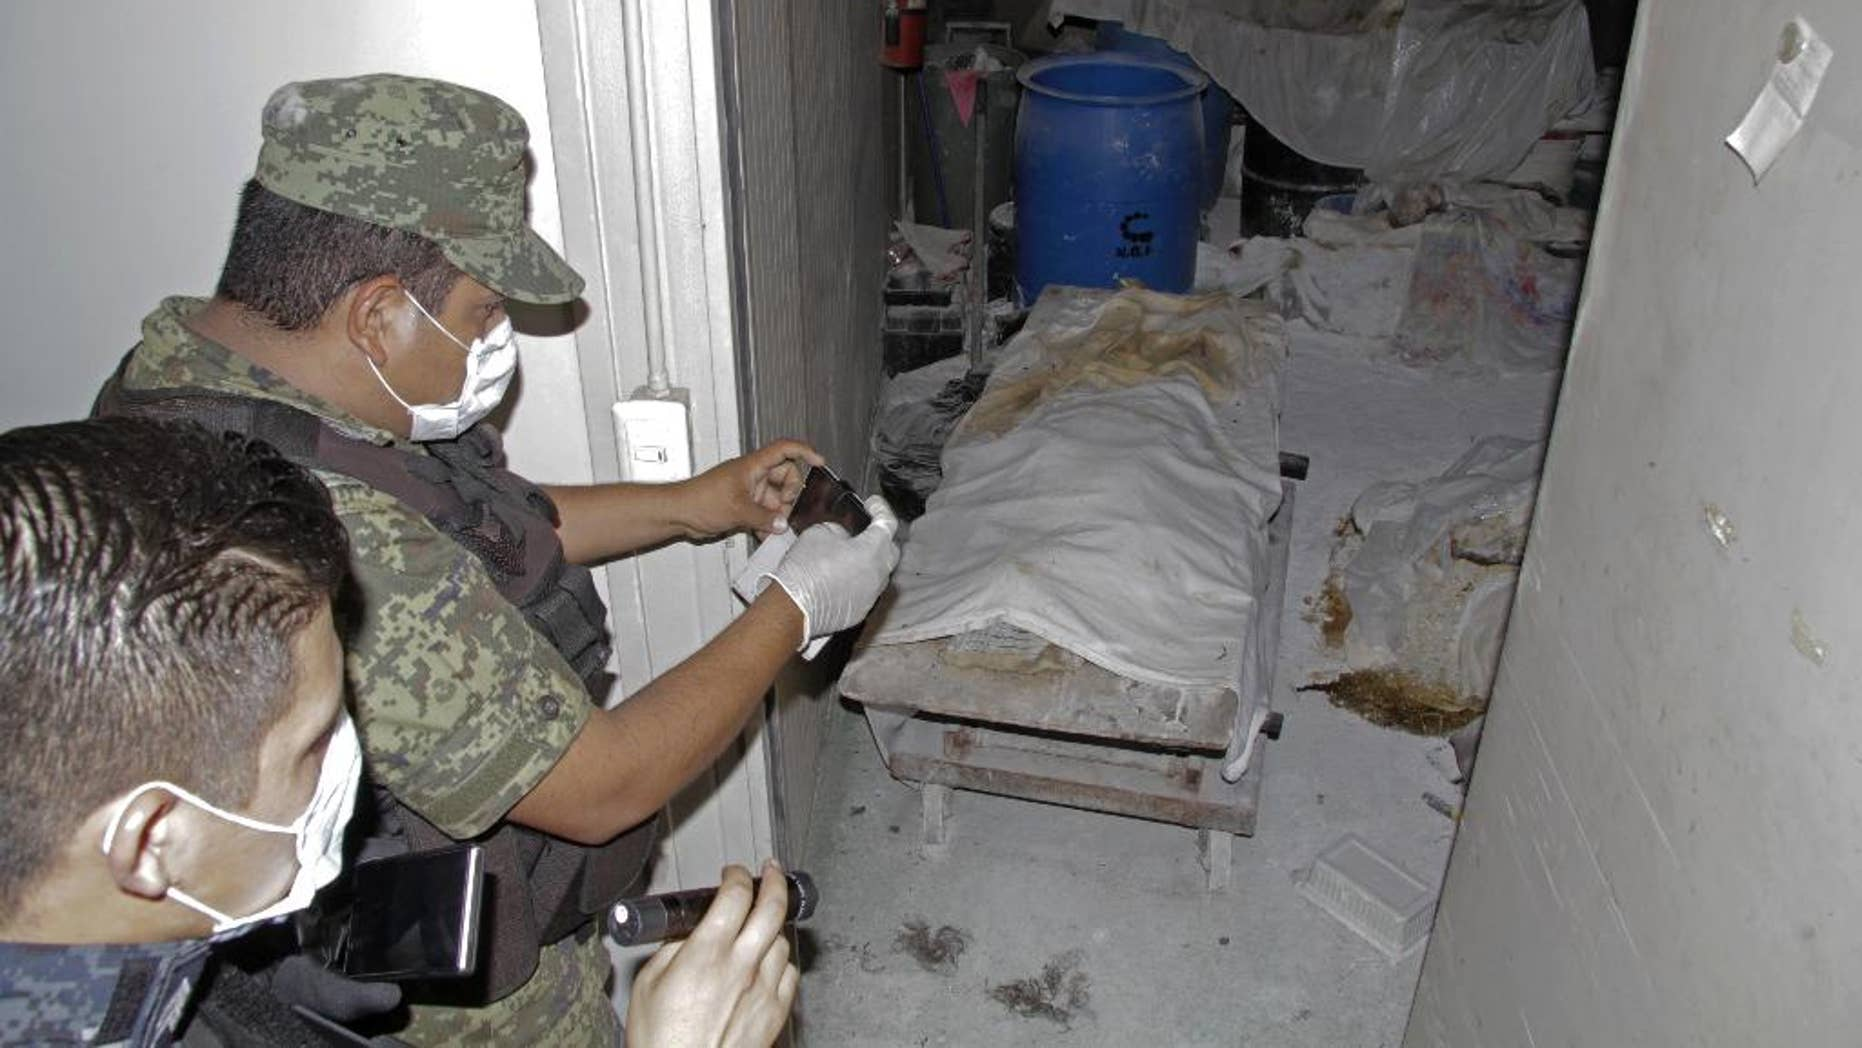 Feb. 6, 2015 - A Mexican army soldier takes photos of a room full of bodies covered with sheets at the crematorium of an abandoned funeral home near Acapulco, Mexico. 61 rotting bodies were discovered Thursday evening at the facility, which had been shuttered for about a year, according to a government official.